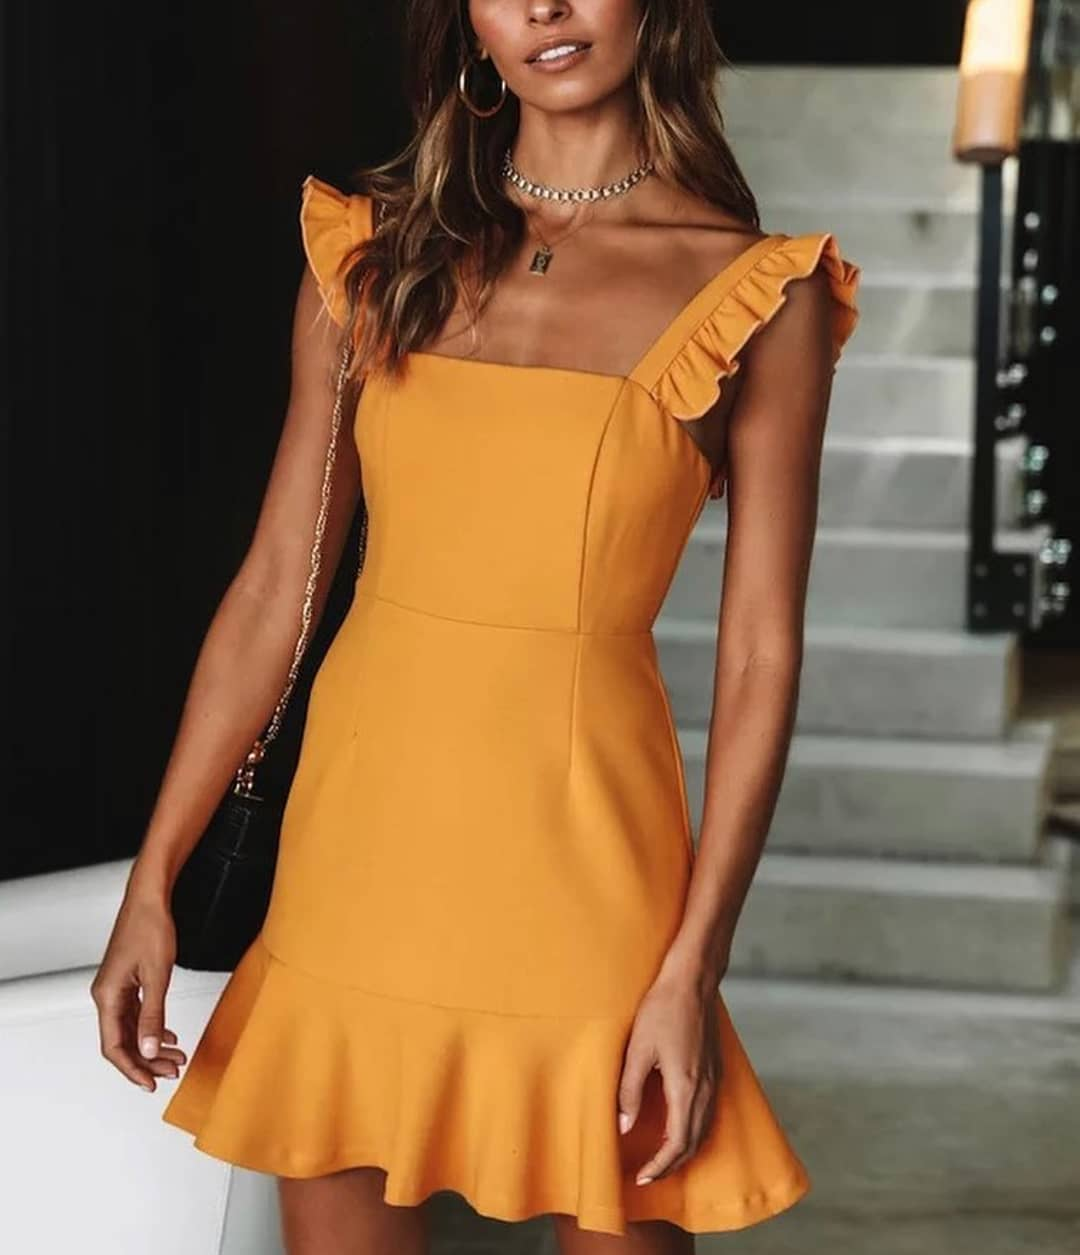 Orange Dress With Ruffled Straps For Summer Cocktail Parties 2019